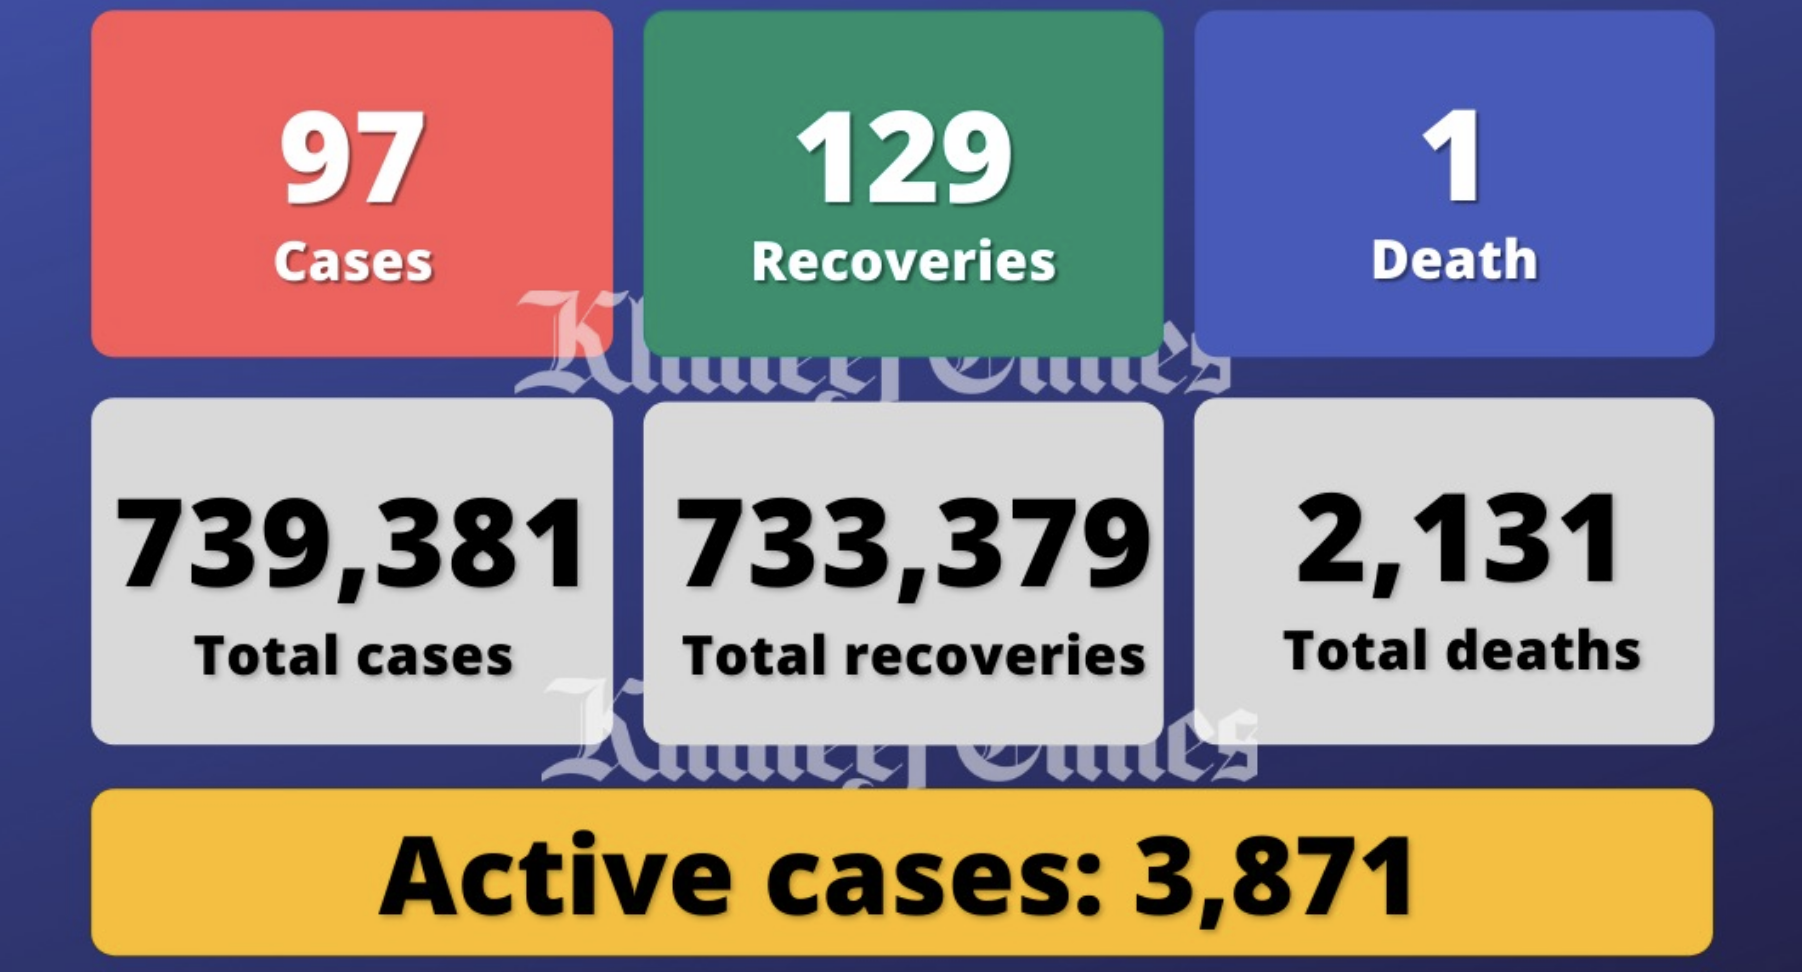 UAE reports 97 Covid-19 cases, 129 recoveries, 1 death